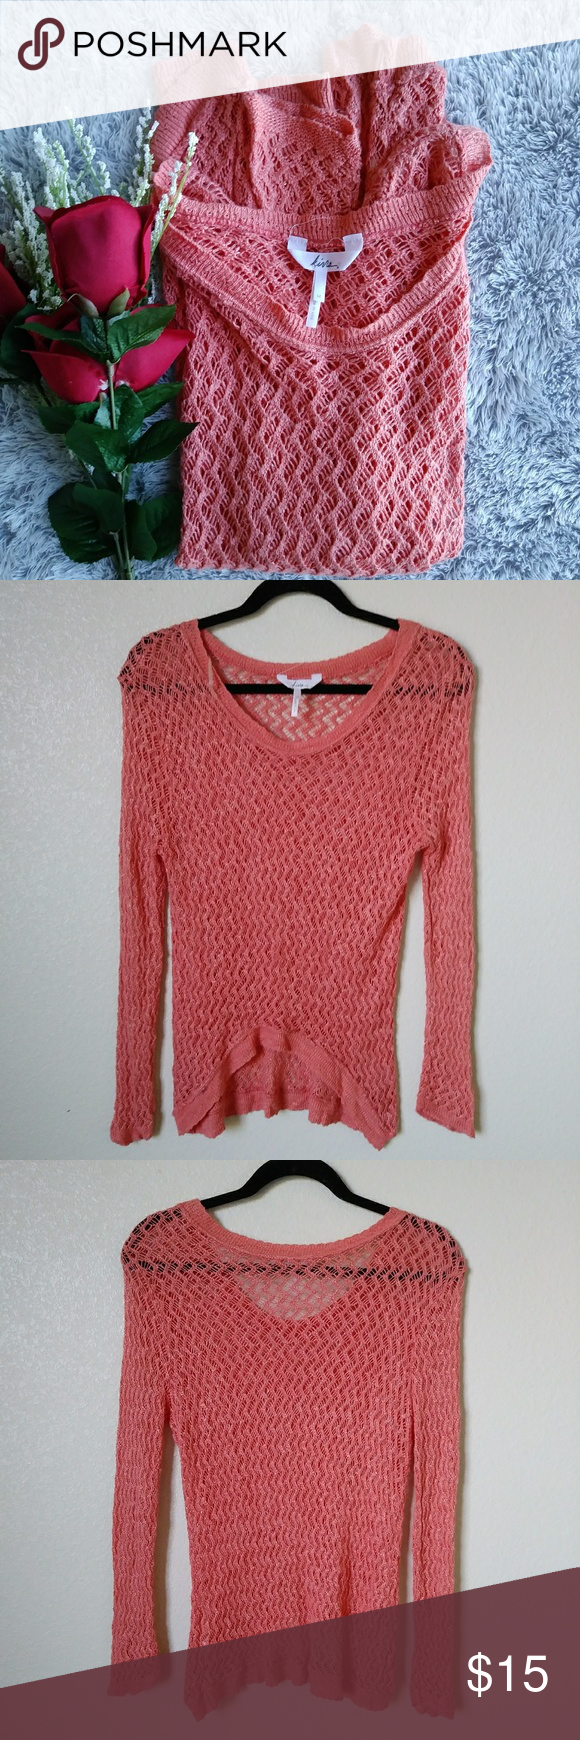 Kirra Coral Light Knit Sweater M | Coral, Conditioning and ...